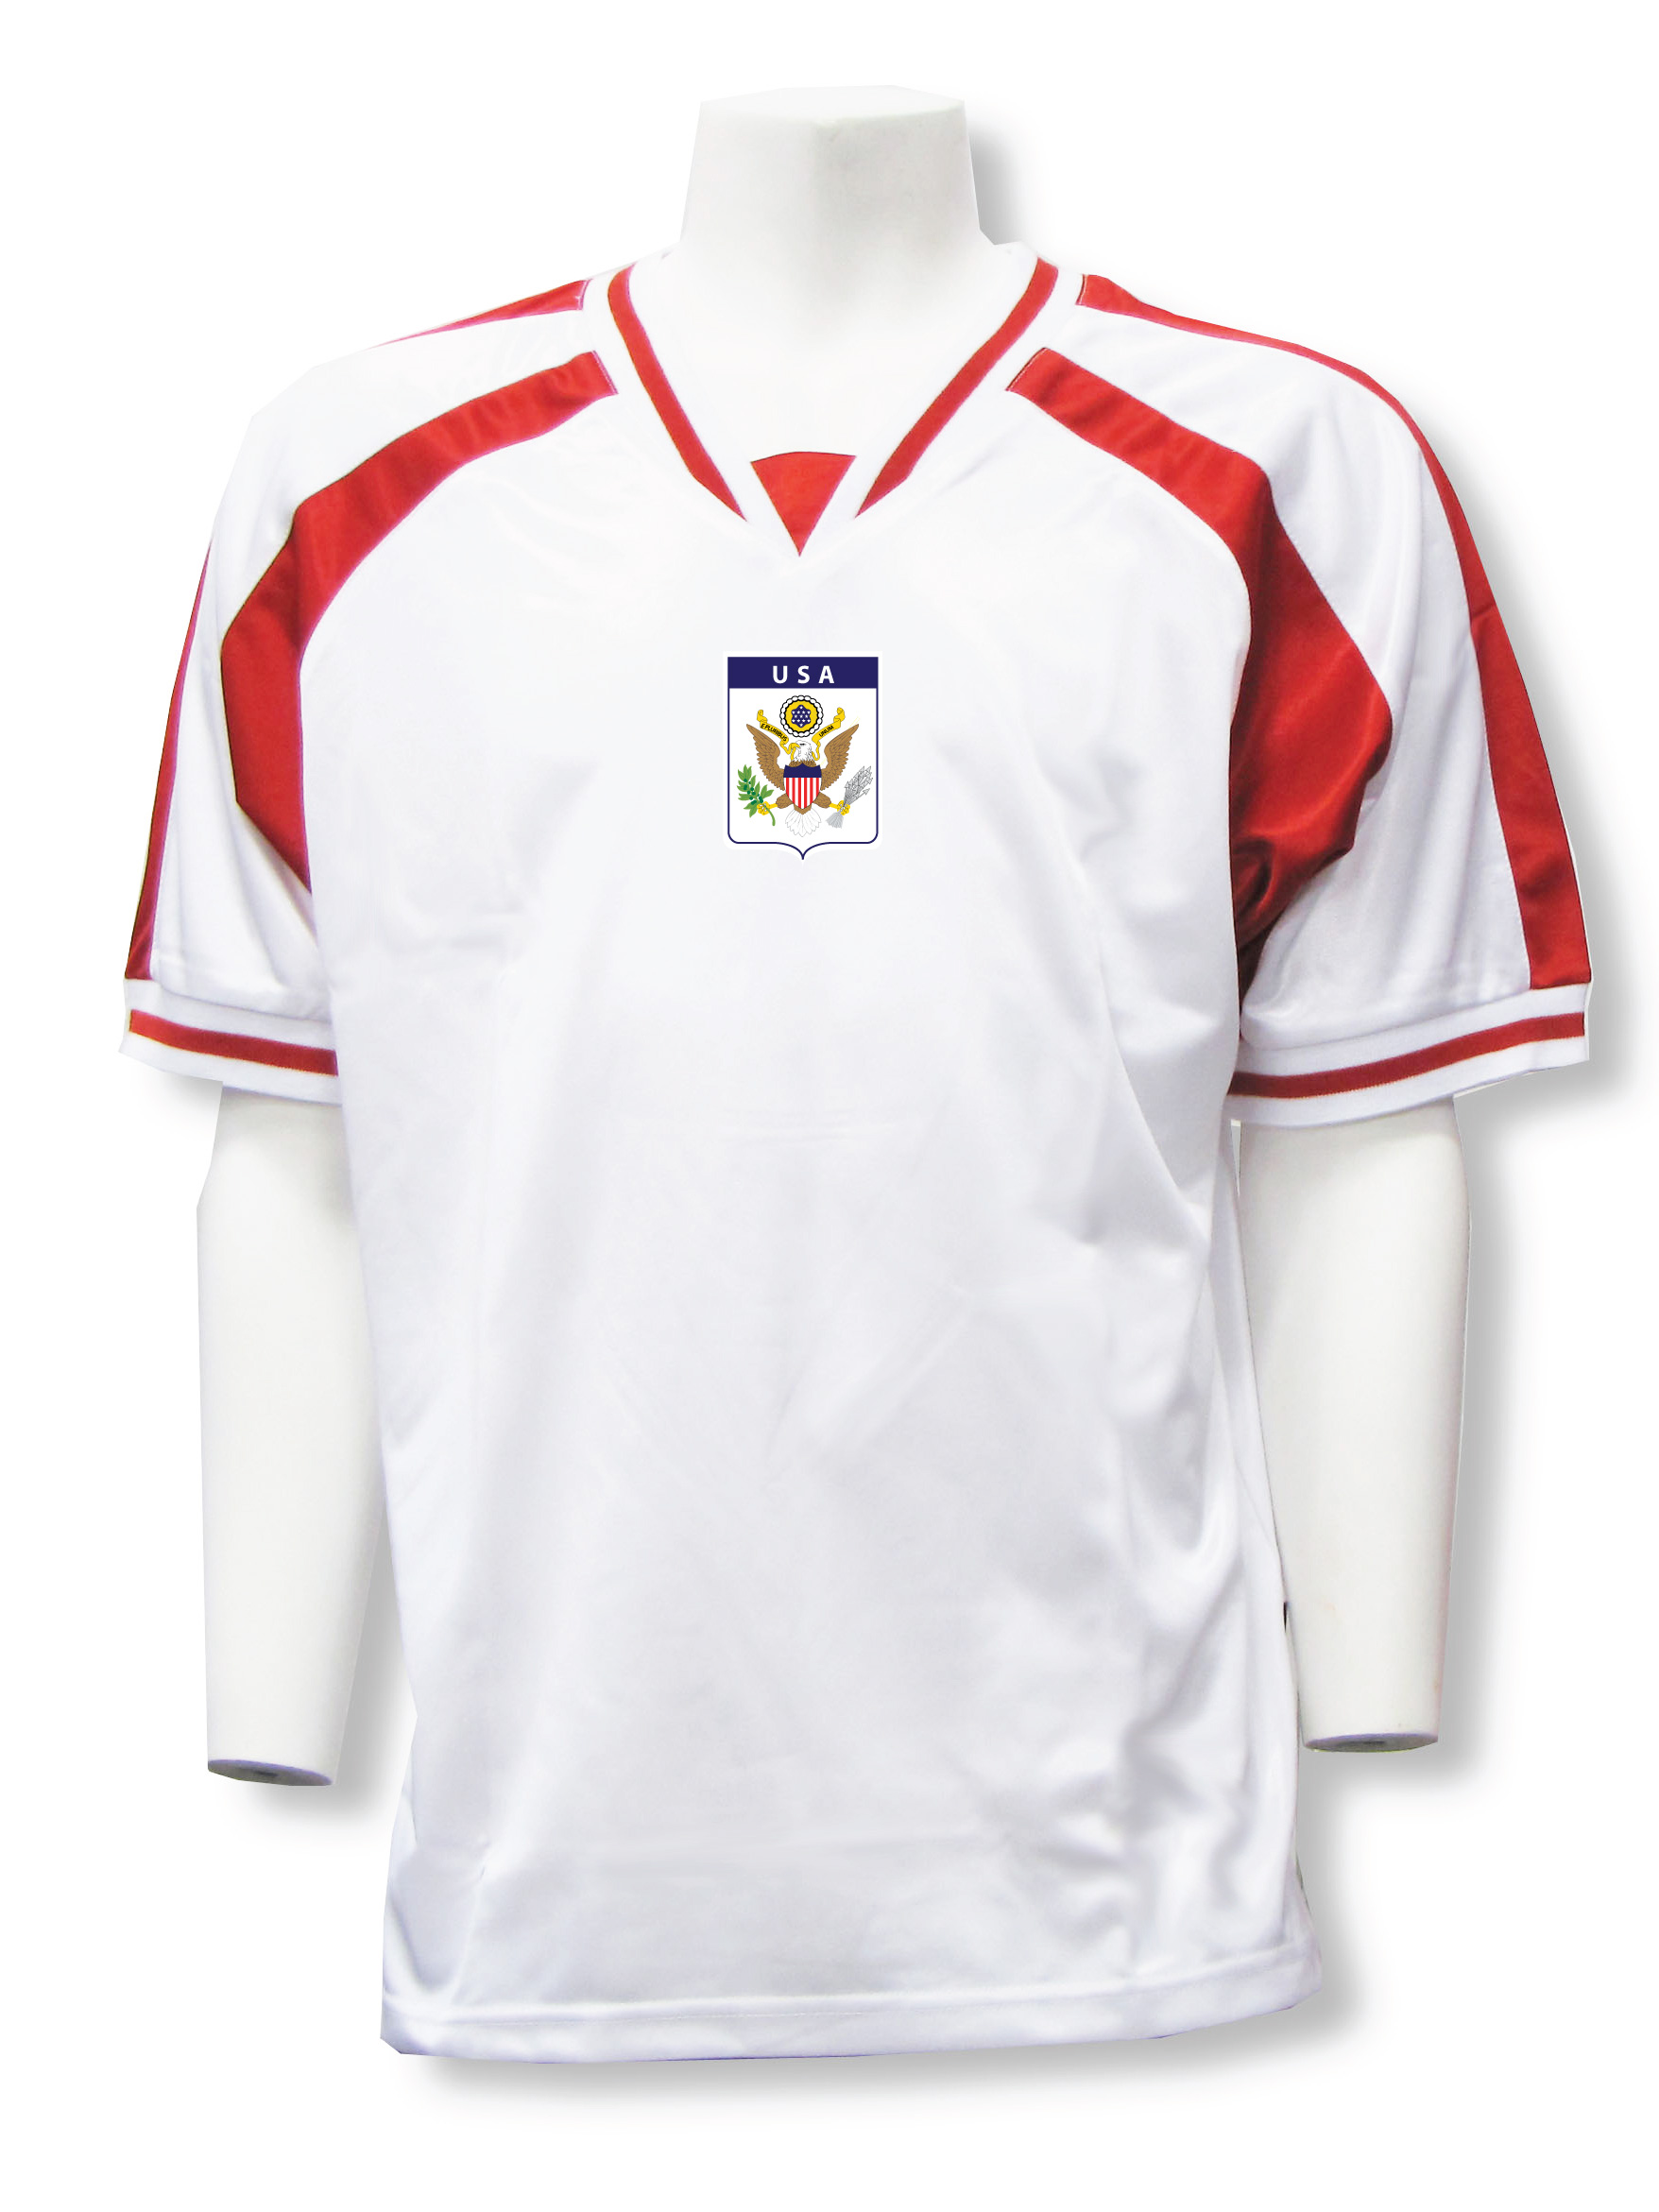 USA soccer jersey in white/red Spitfire